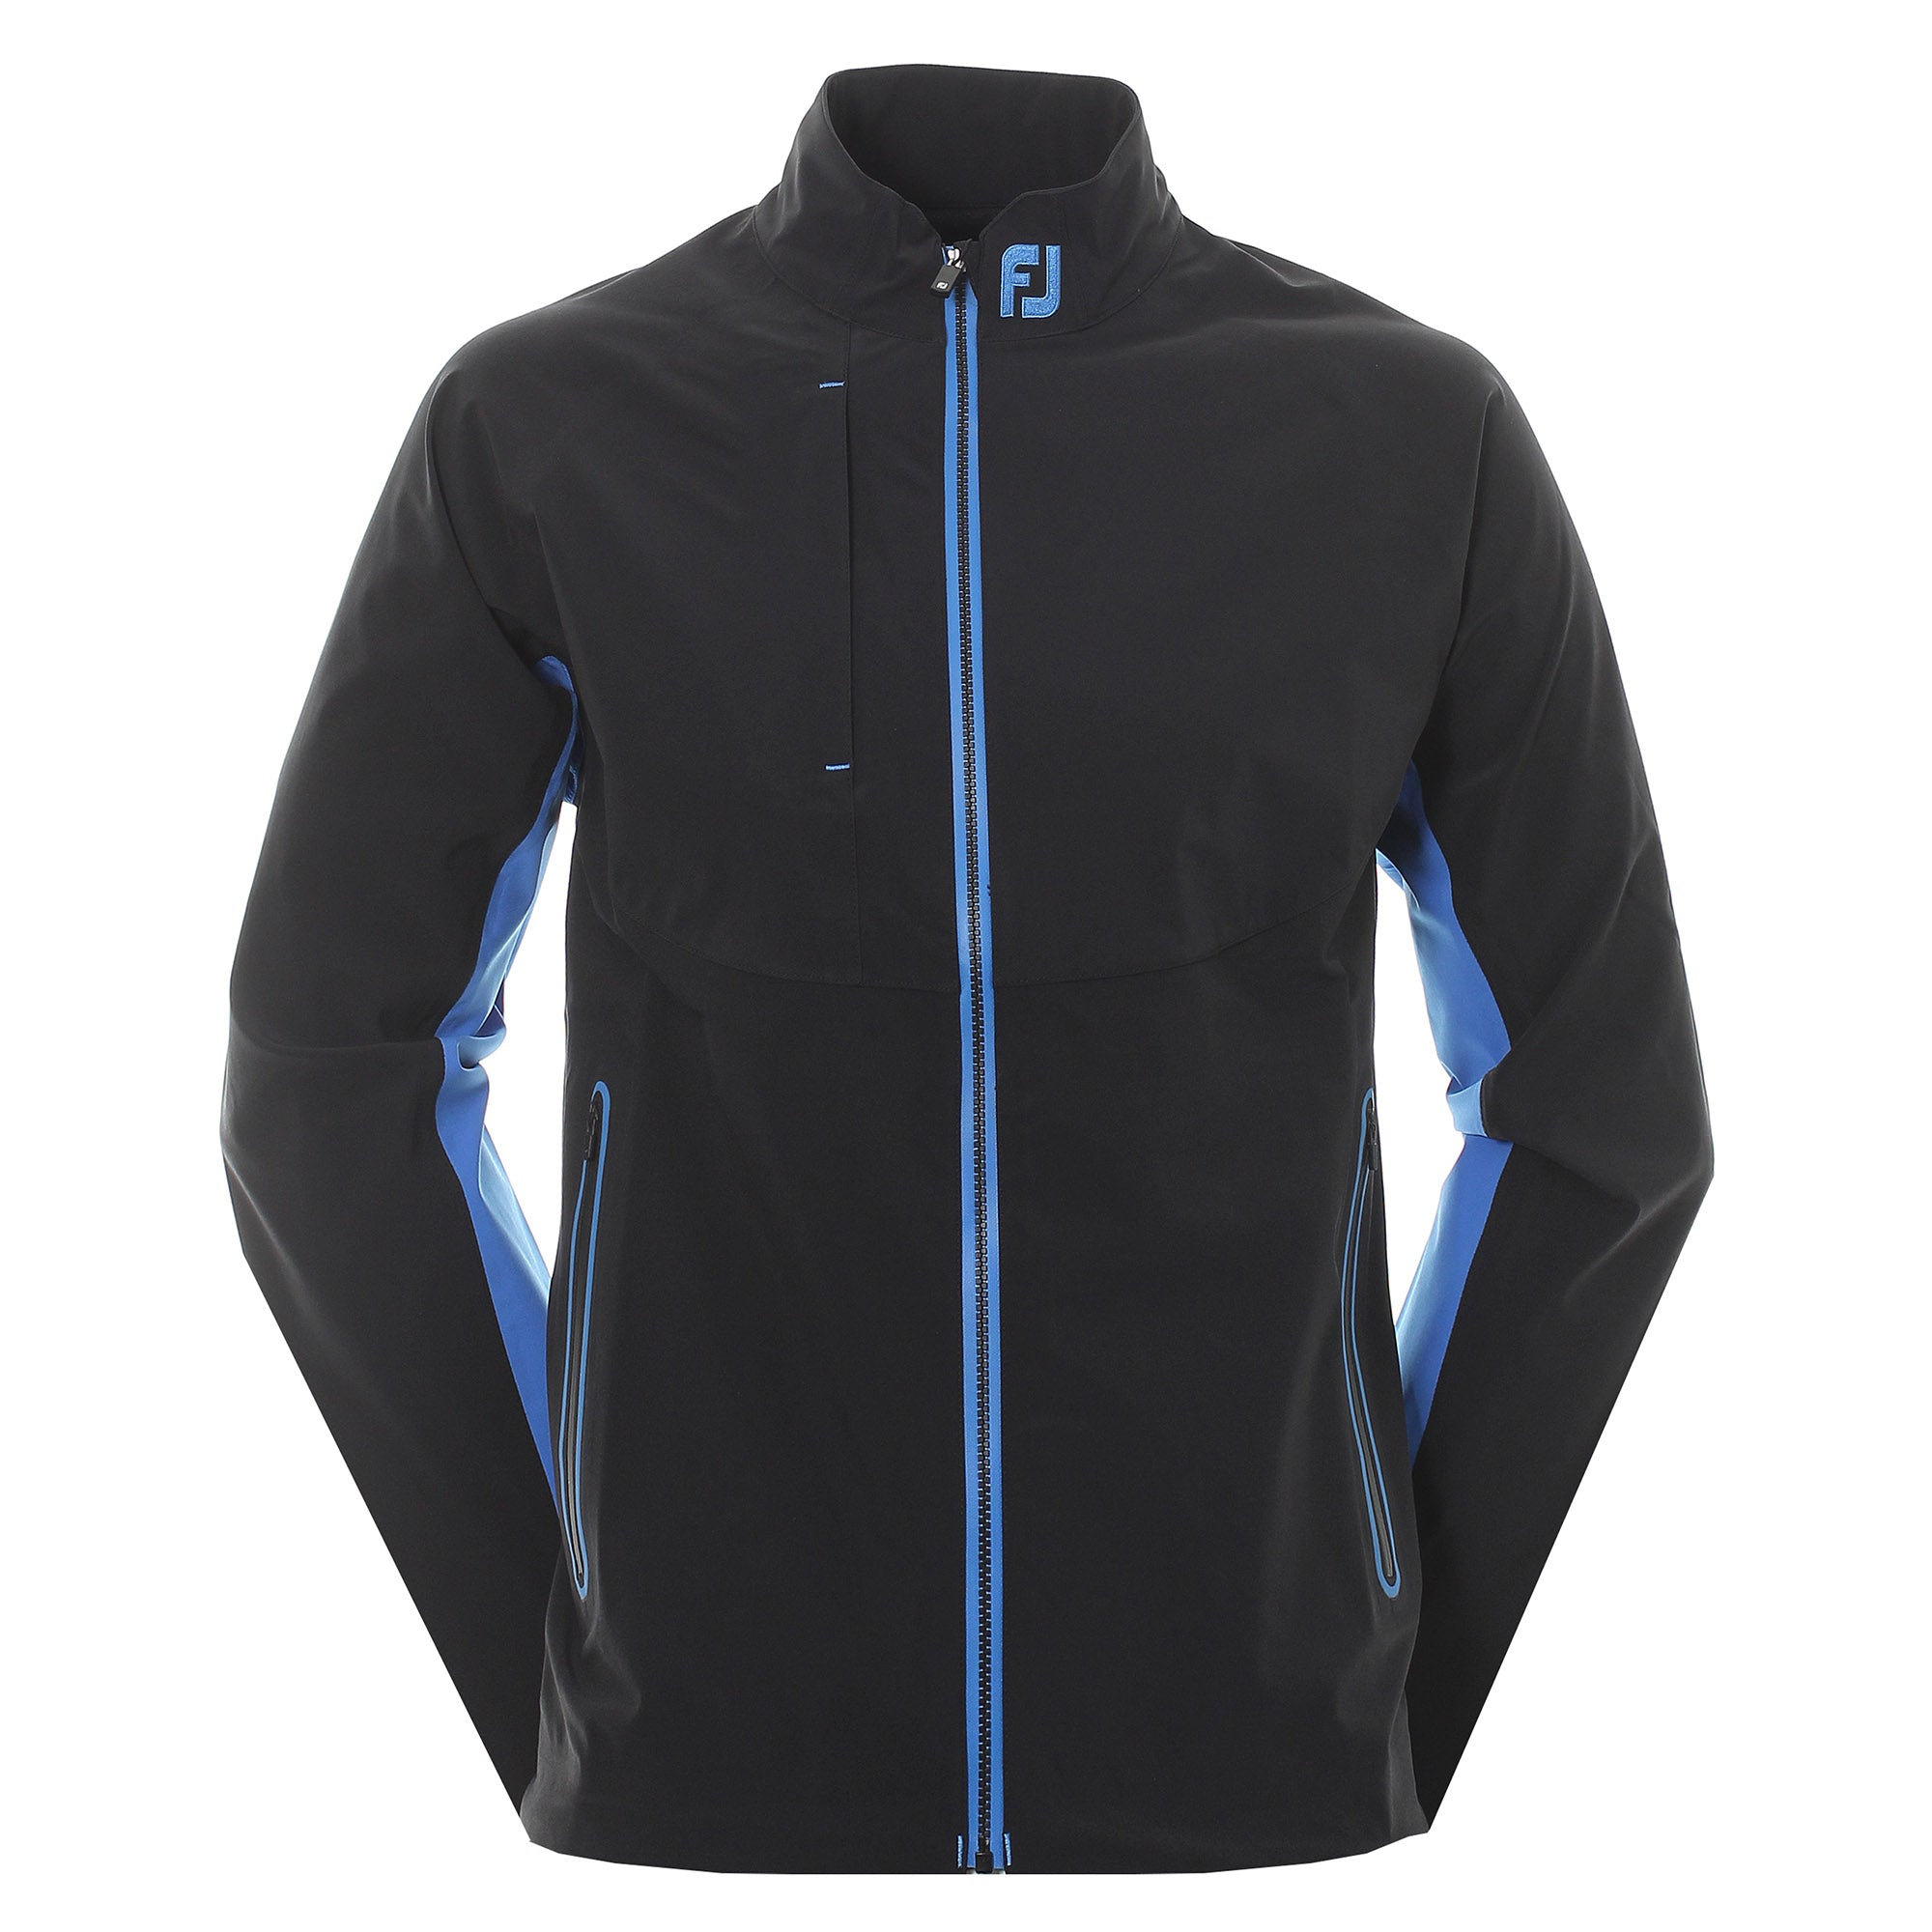 FootJoy DryJoys Tour LTS Rain Jacket 95018